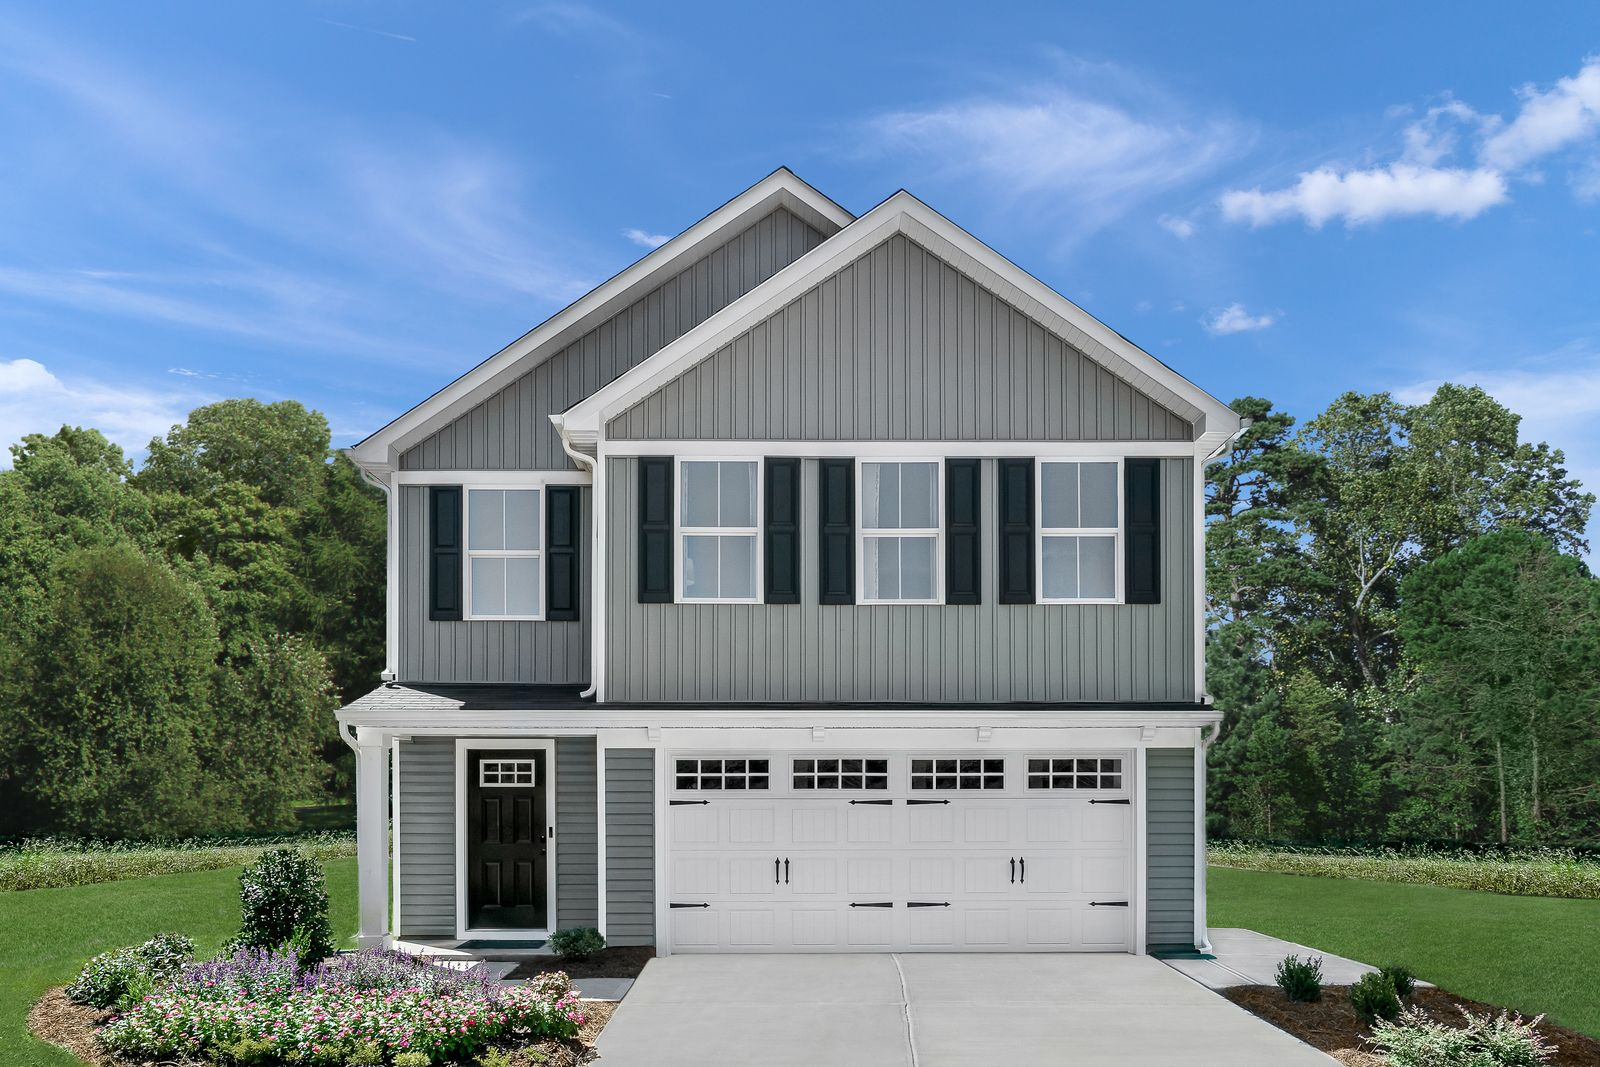 WELCOME TO MARQUIS HILLS:Enjoy new single-family homes with 2-car garages in a quiet, peaceful community with beautiful hills & private wooded homesites. Walkable to Target and Starbucks.Schedule your tour today!